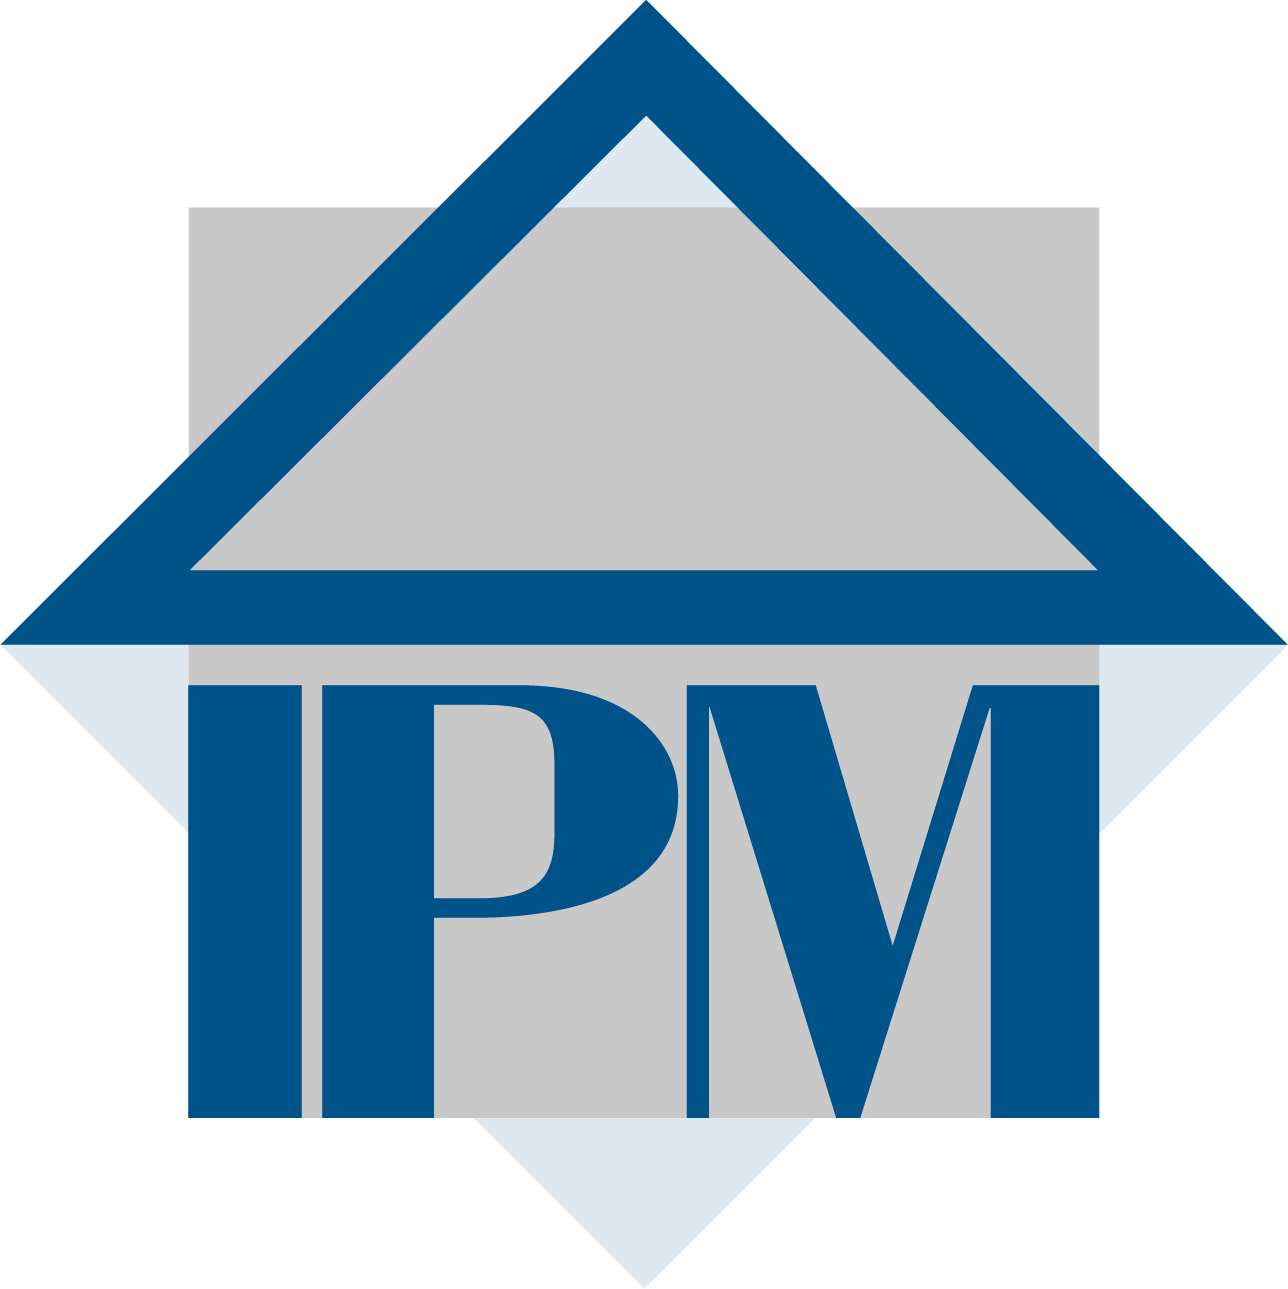 IPM - International Promotion Marketing